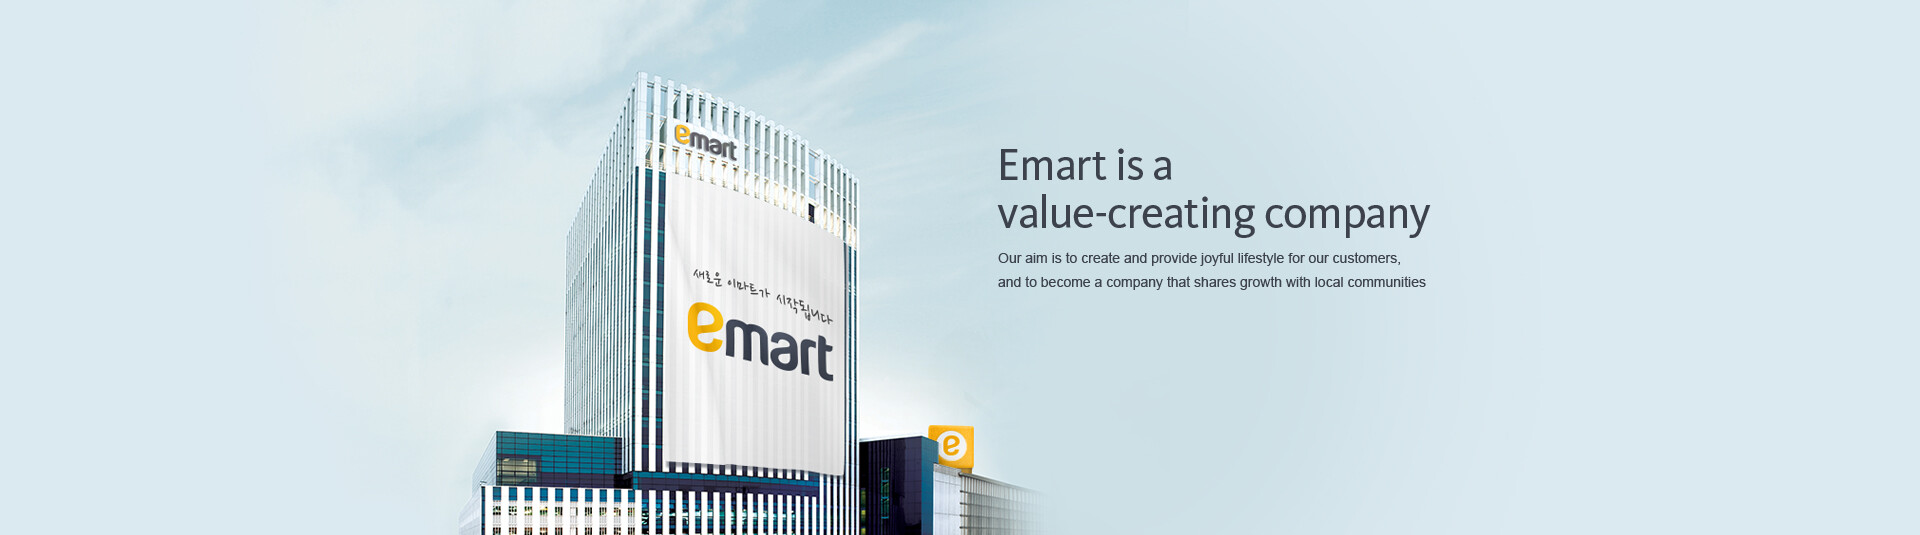 Emart is a value-creating company Our aim is to create and provide joyful lifestyle for our customers, and to become a company that shares growth with local communities